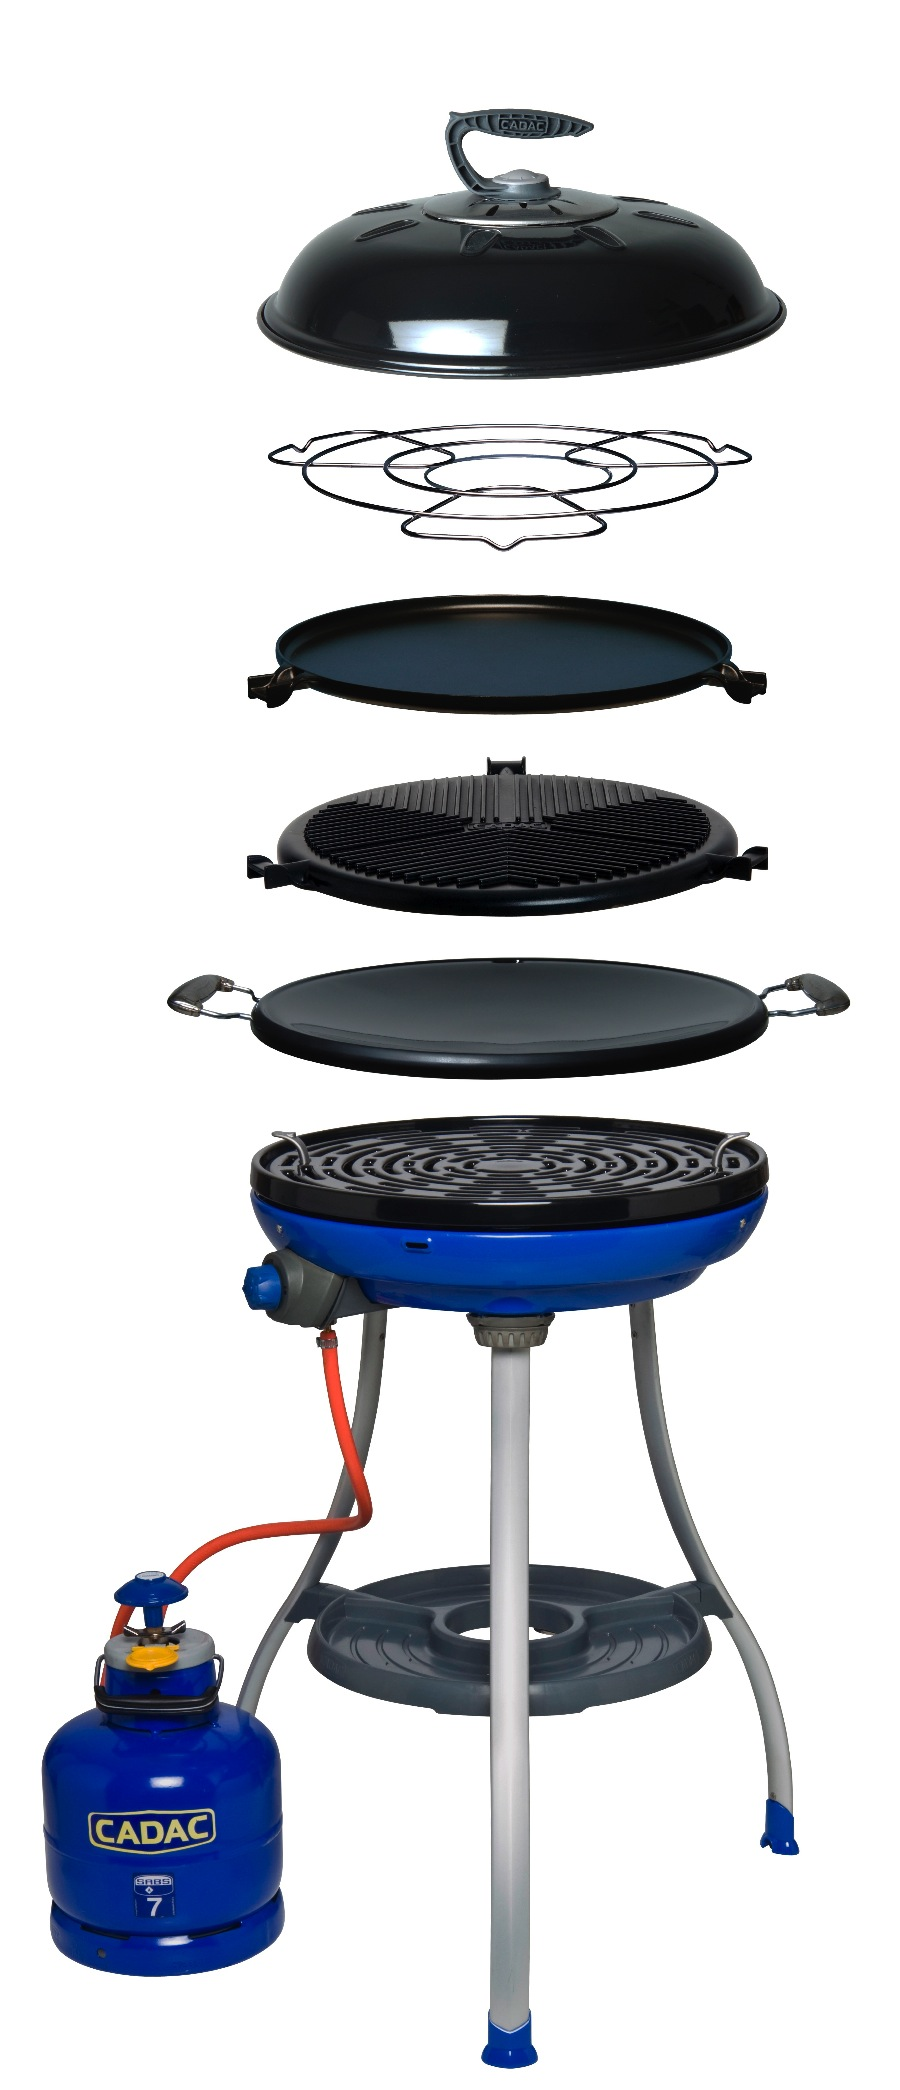 Cadac Portable Grills Are The Easy Answer To Cooking Great